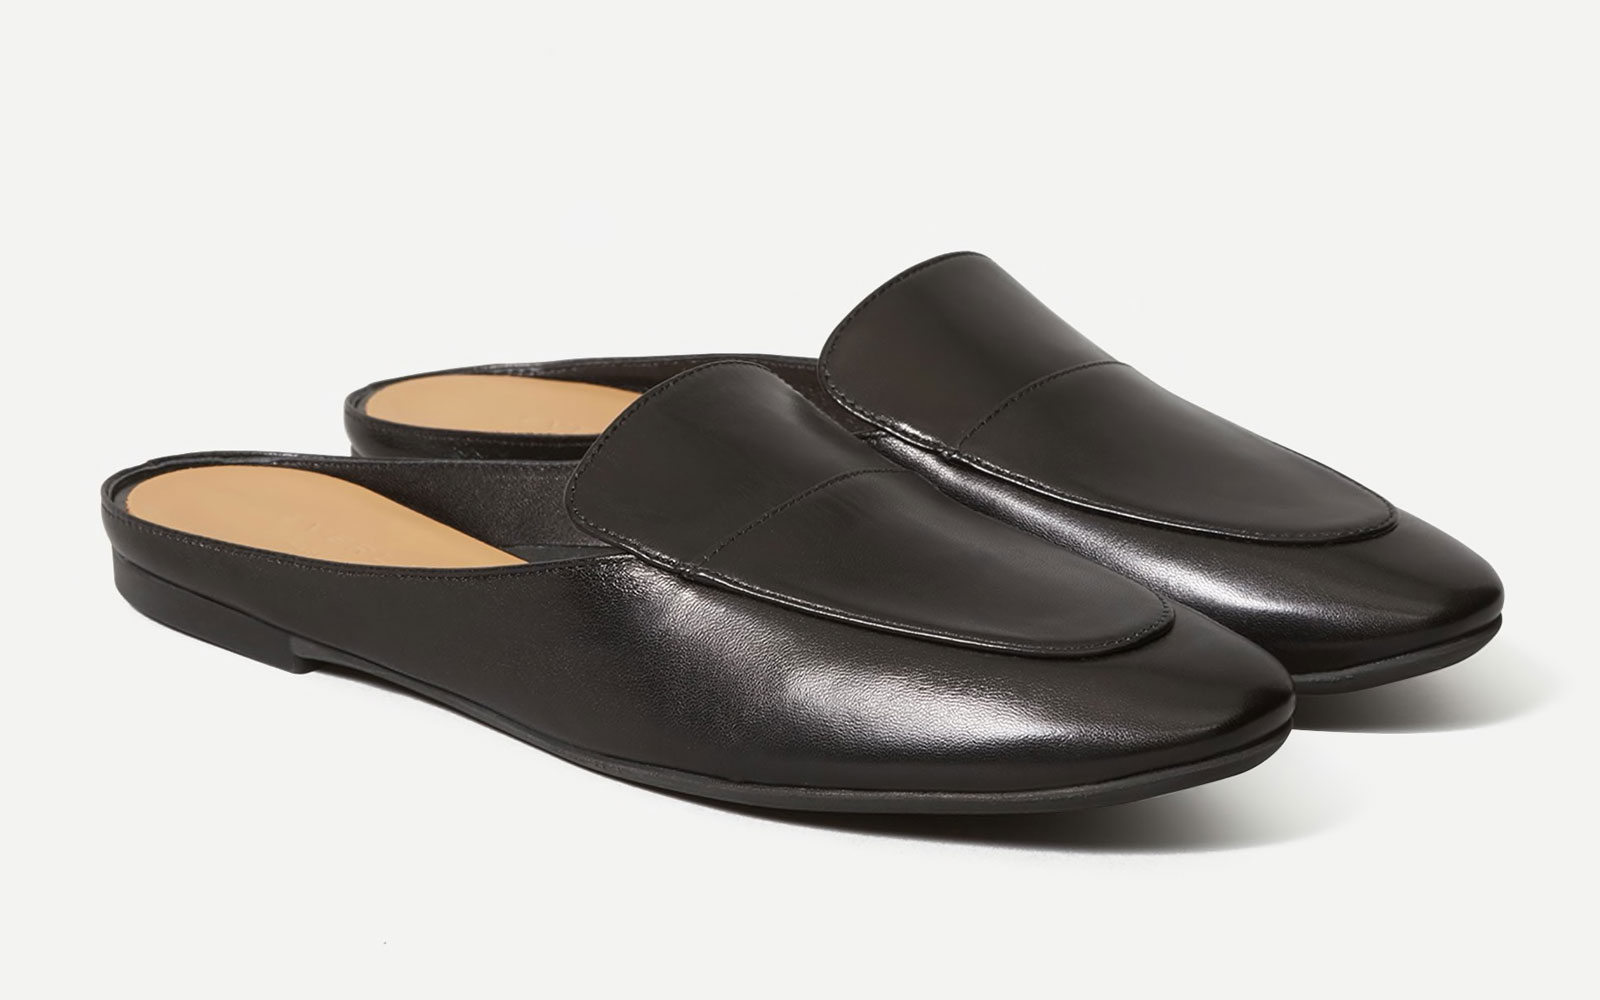 Black loafer mules